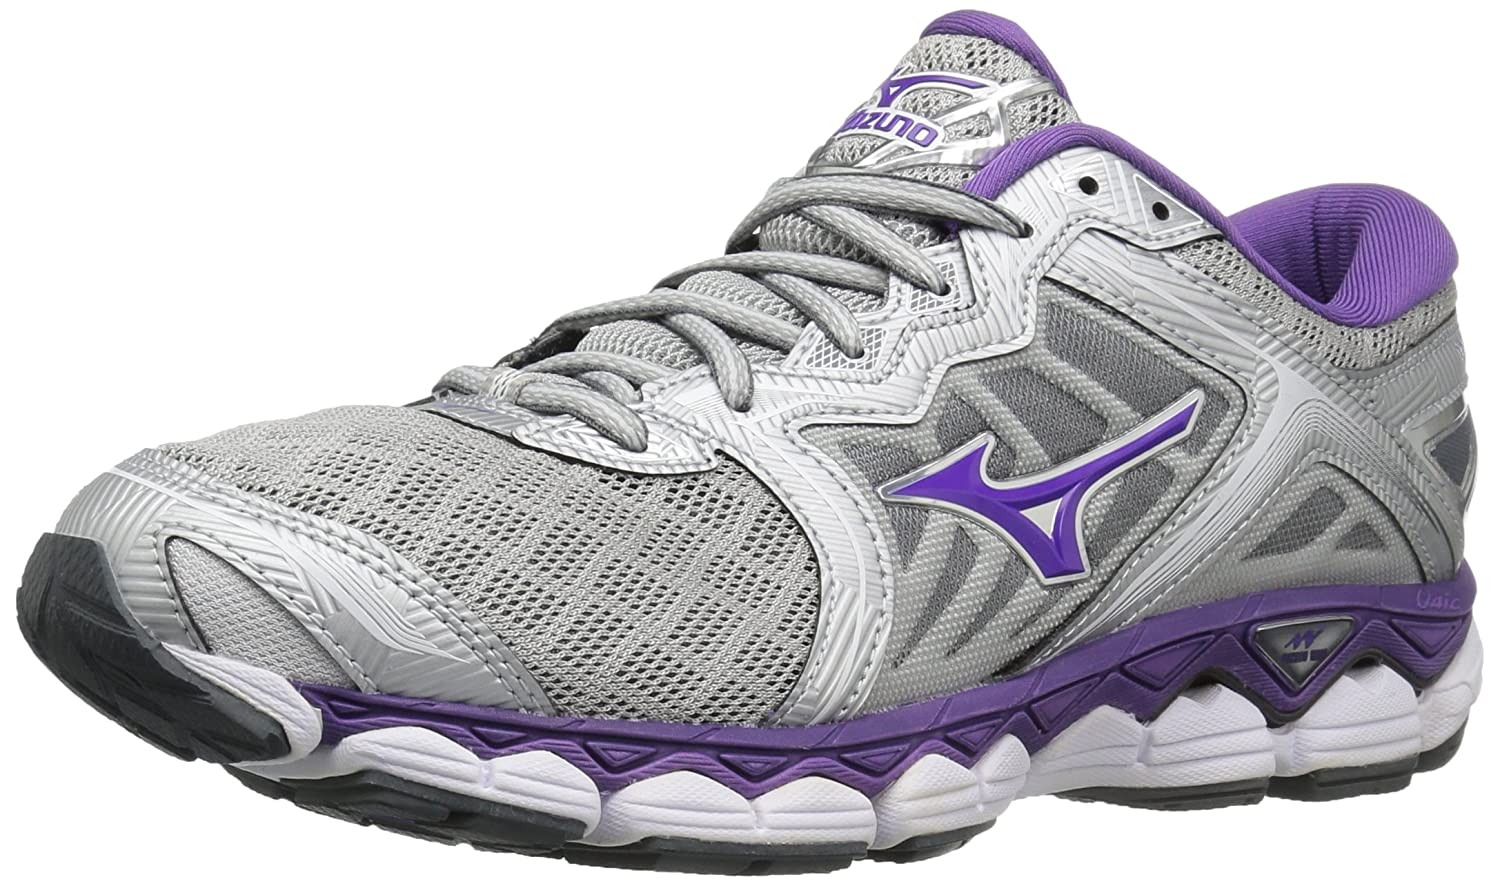 Mizuno Women's Wave Sky Running-Shoes B01N2R4HUK 9.5 B(M) US|Silver/Pansy/Castle Rock